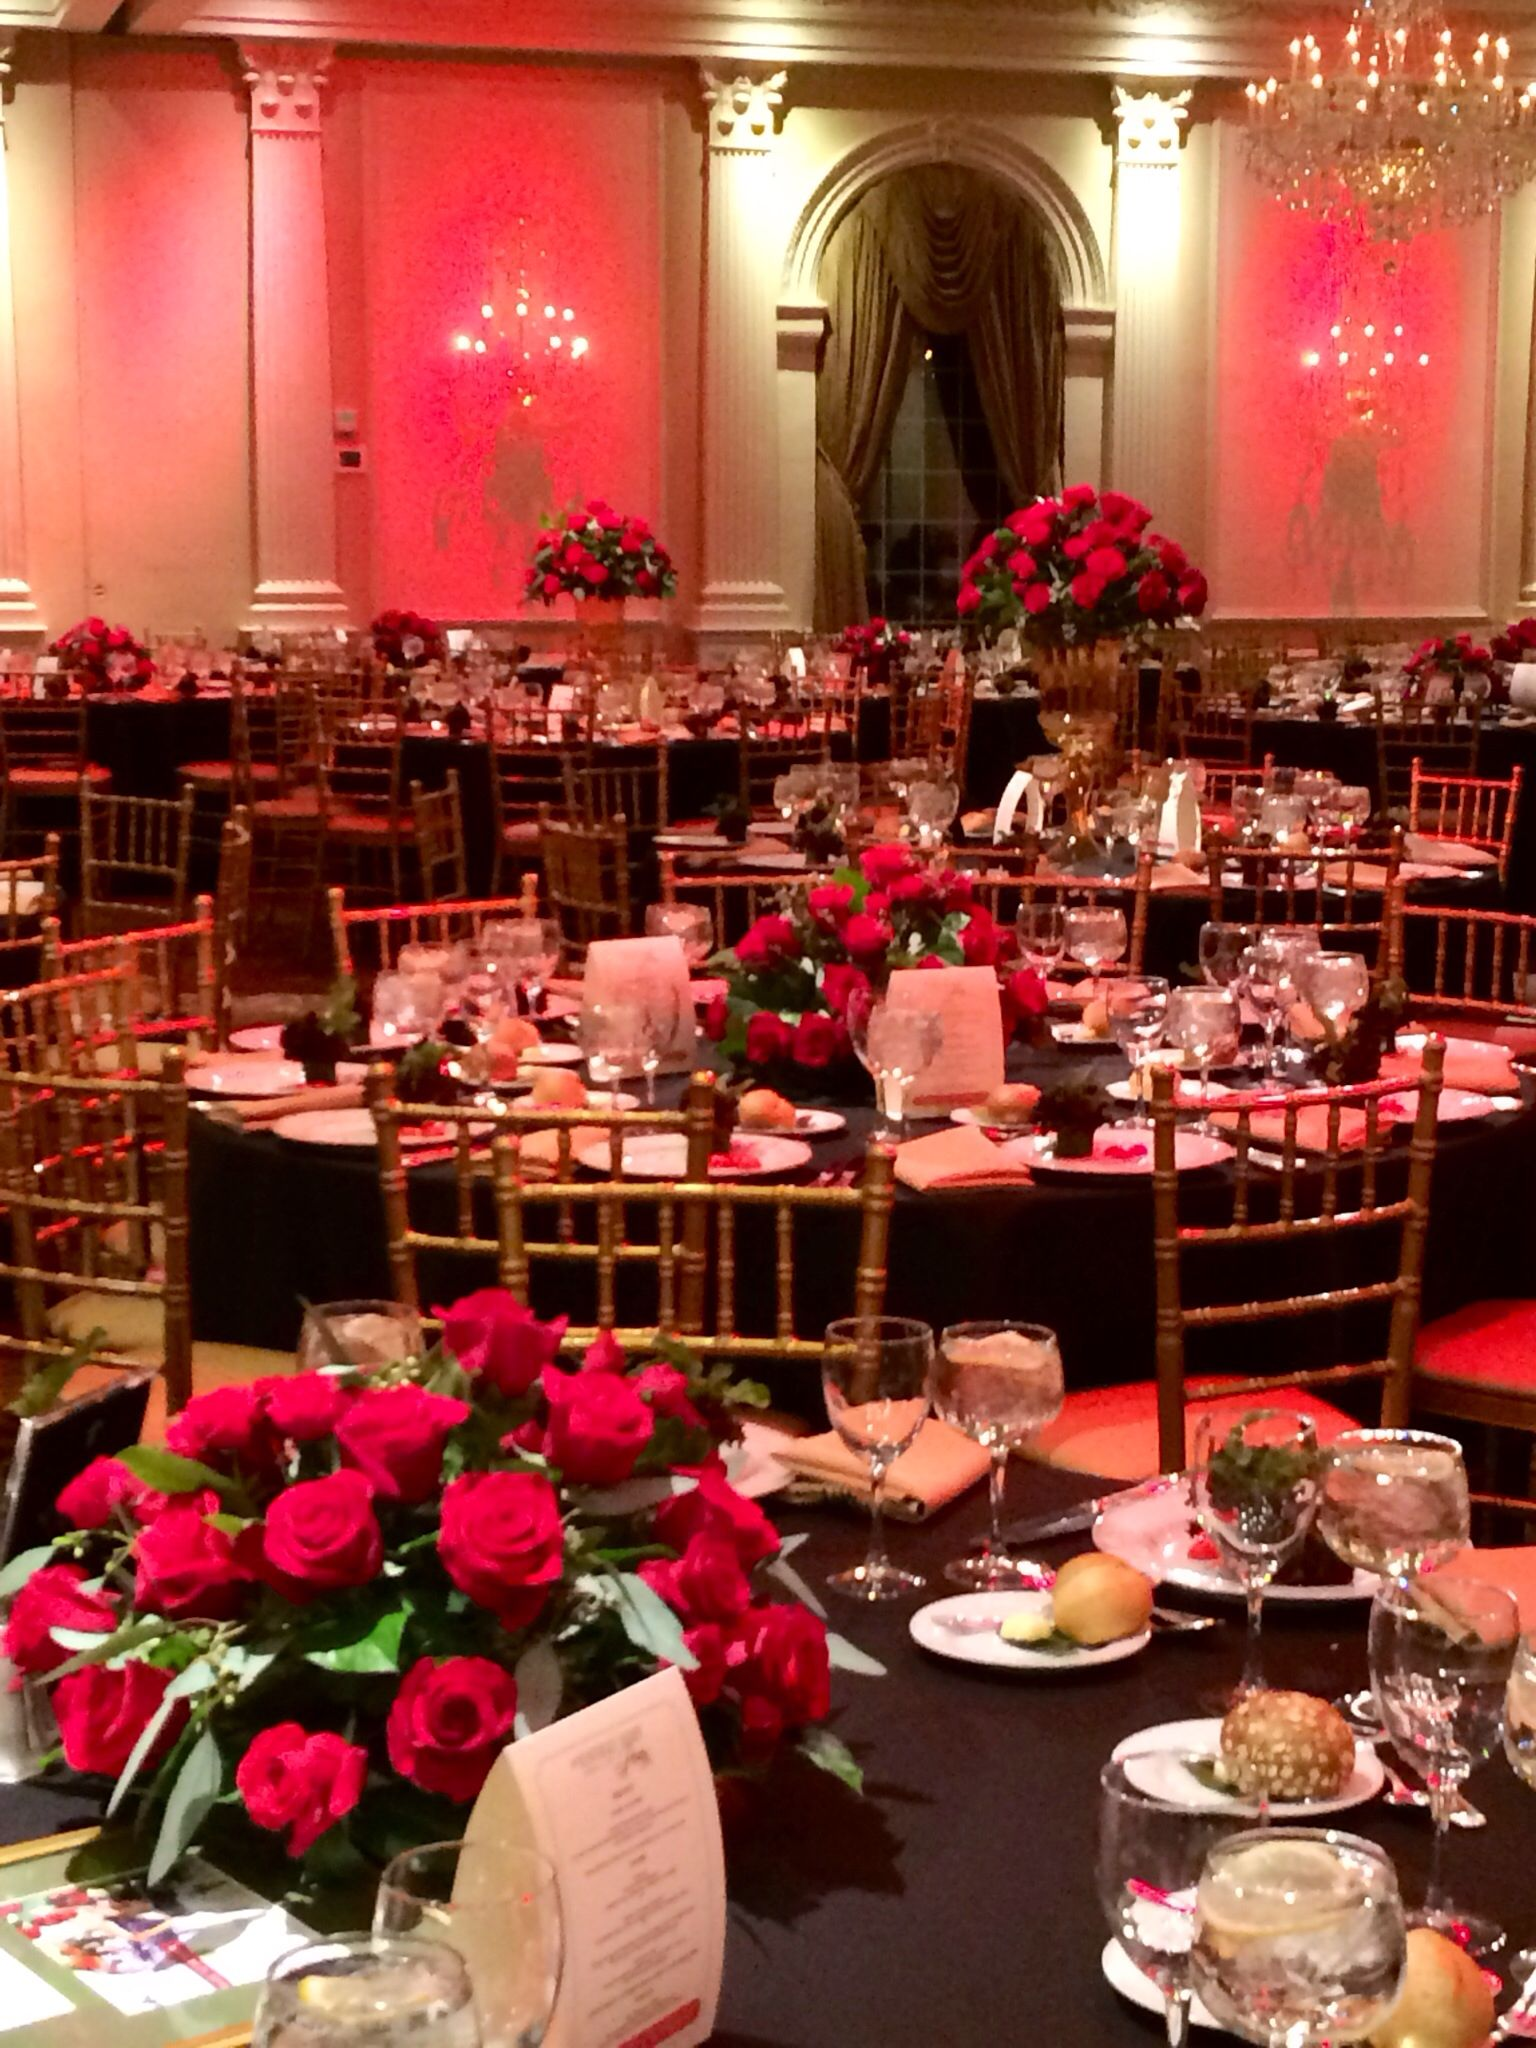 Kentucky Derby Themed Gala Red Black Gold Decor